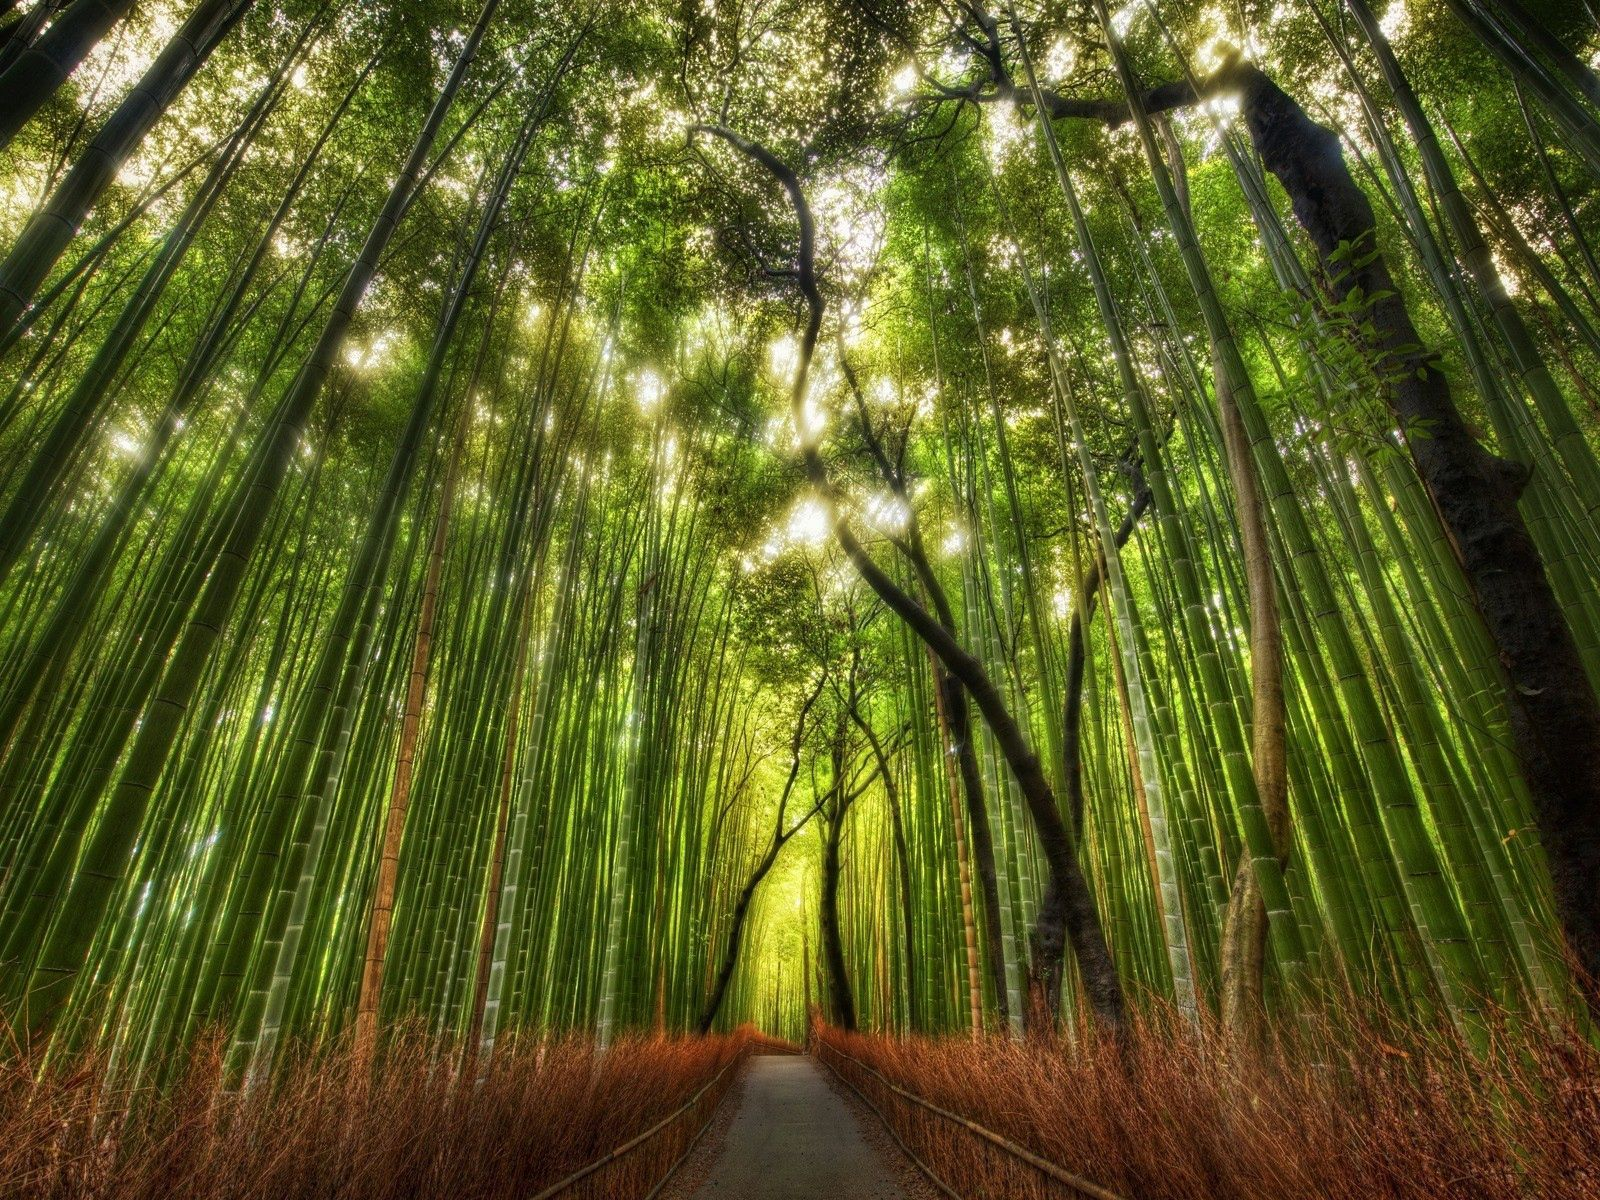 89276 download wallpaper Nature, Bamboo, Forest, Tops, Vertex, Trail, Path screensavers and pictures for free